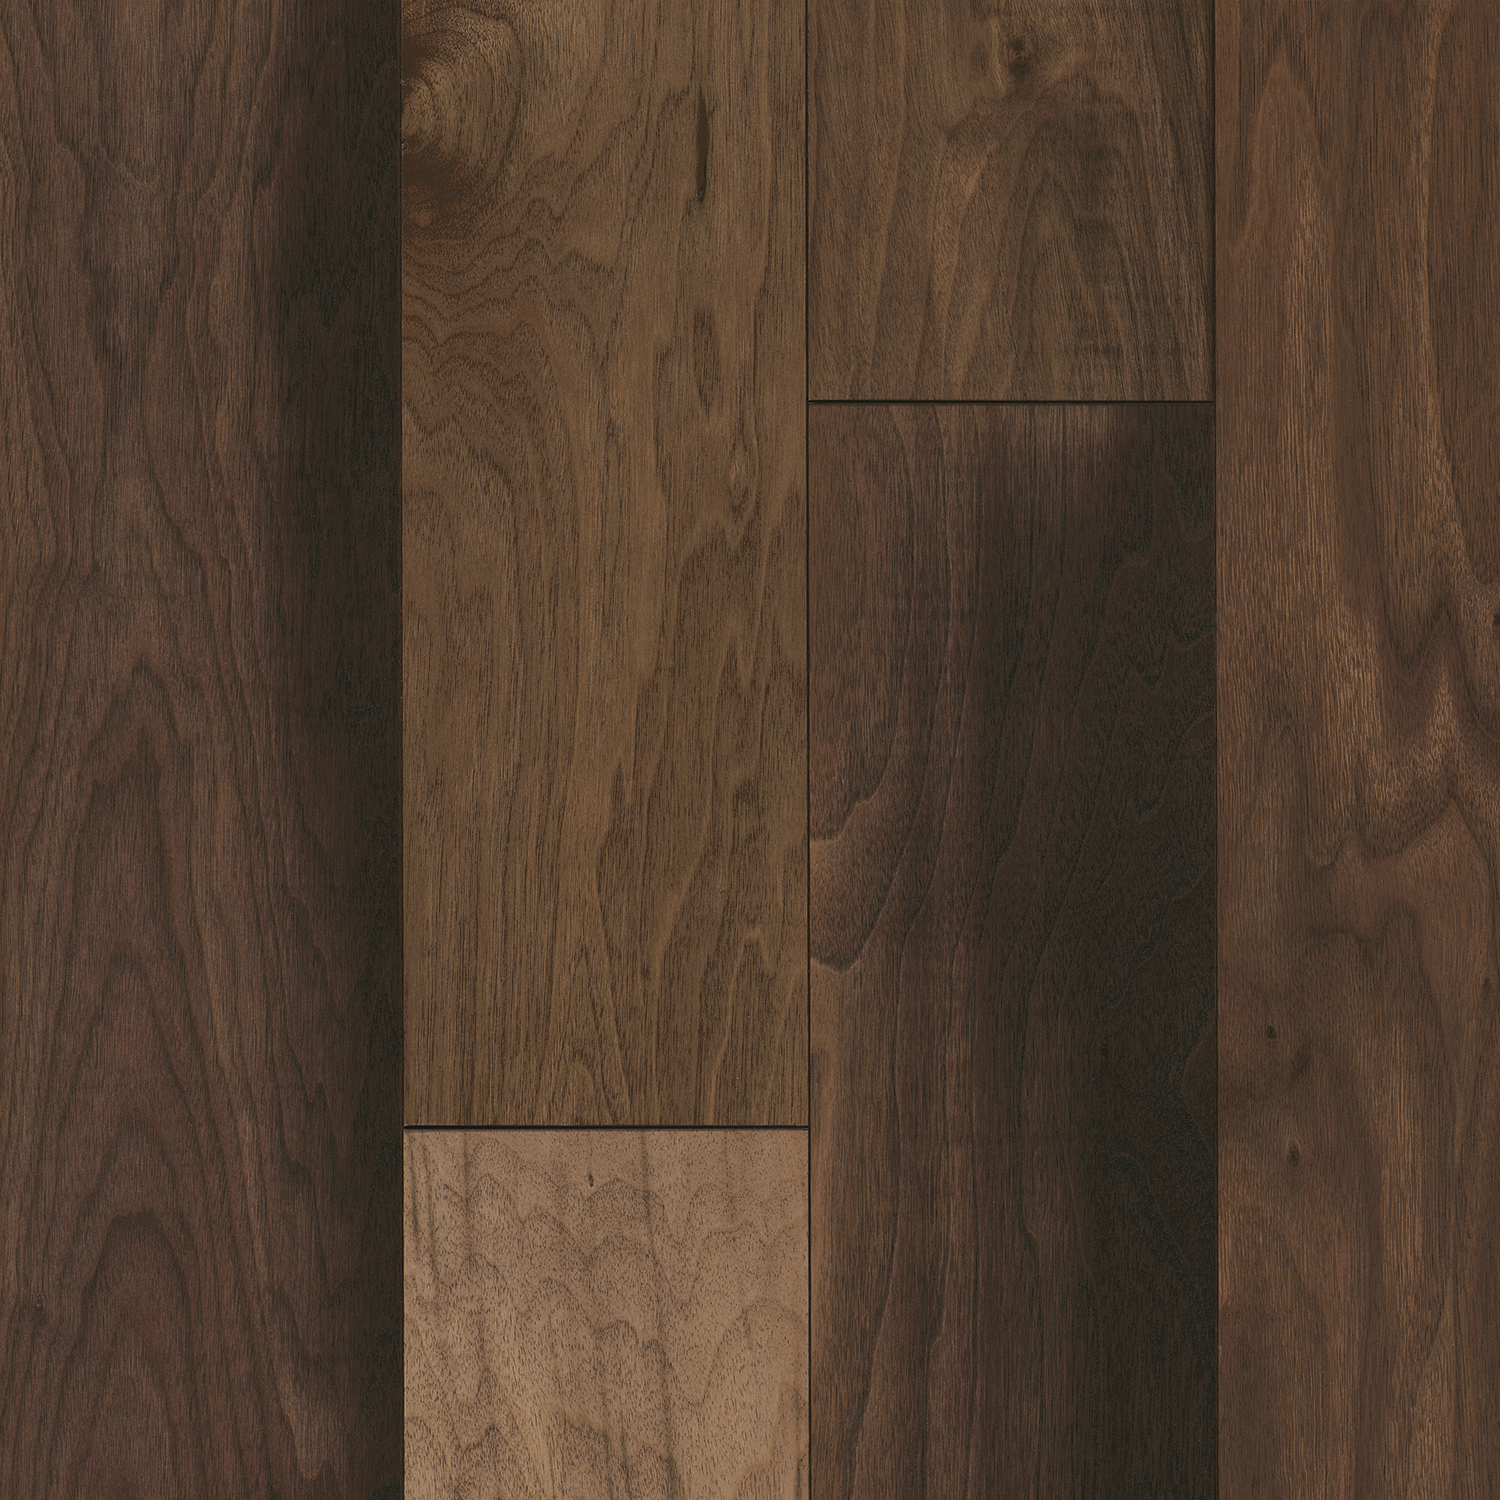 Artisan Collective Crafted Warmth Engineered Hardwood EWAC75L402EE